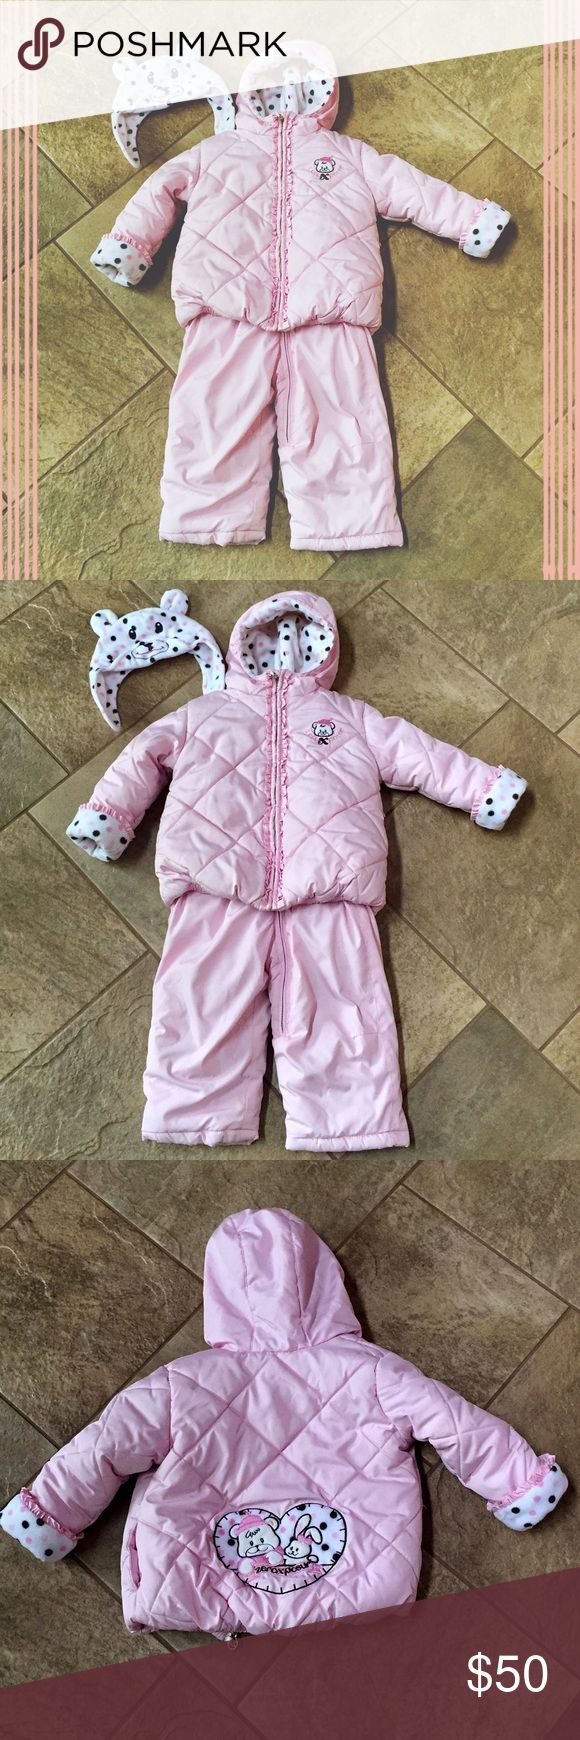 zero xposure snow suit • 100% polyester • includes hat, coat & overalls • heavy but not still • straps to overalls are adjustable • like-new condition: coat has small mark on front shown in picture ZeroXposur Matching Sets